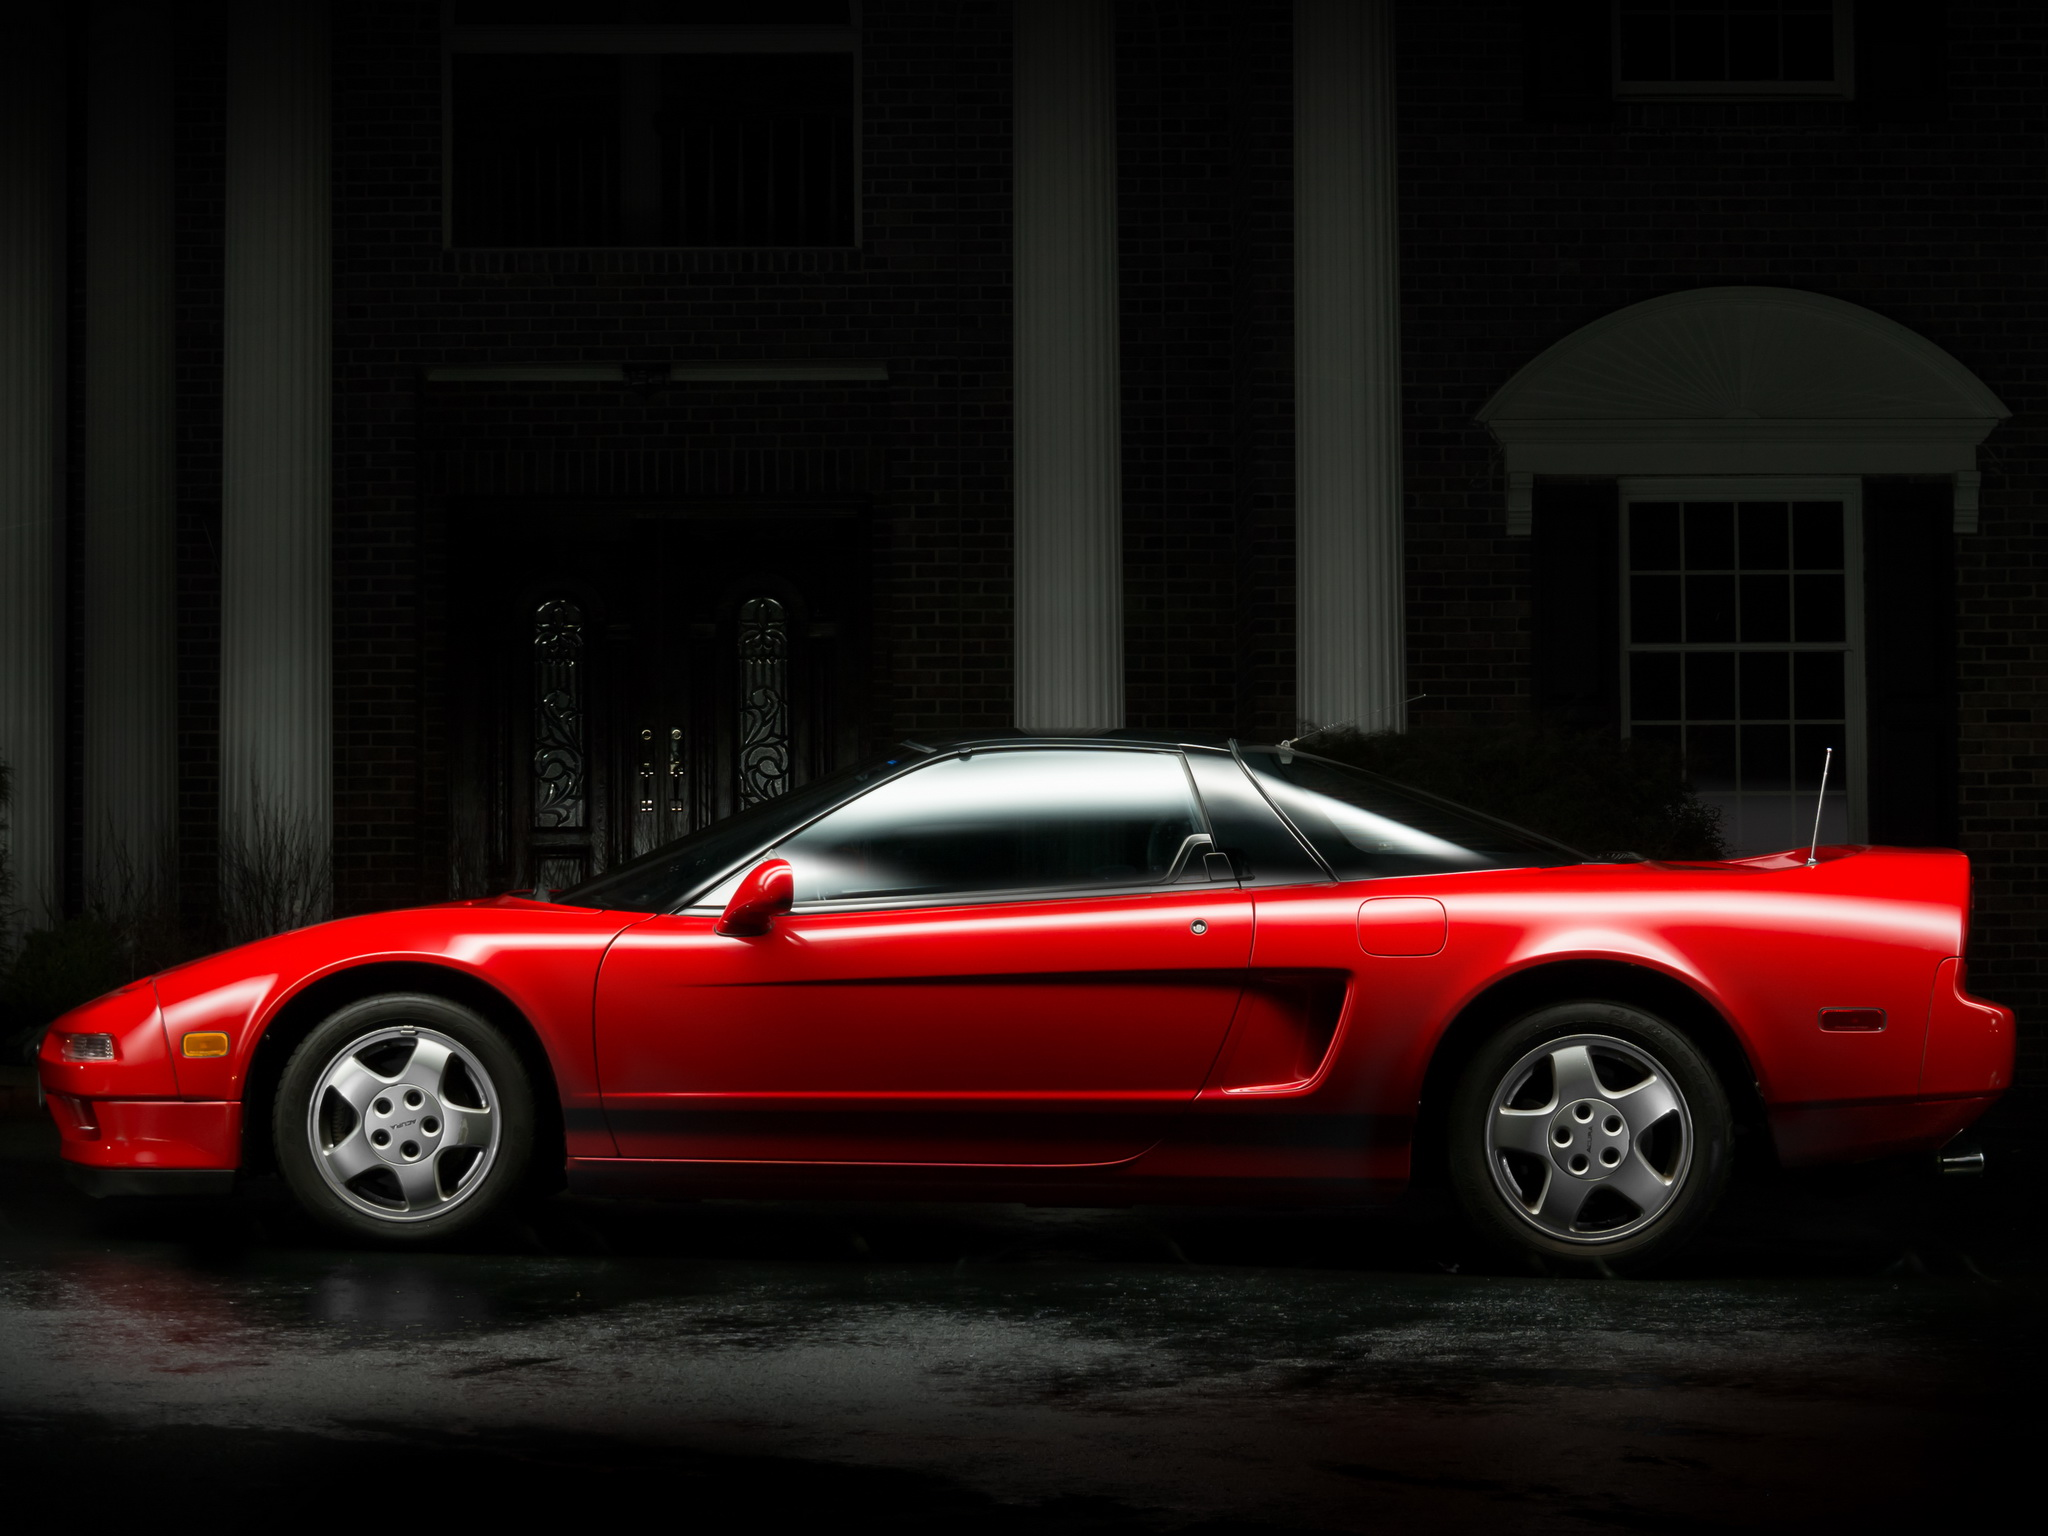 Acura Exotic Car >> 1991 Acura NSX Gallery - Supercars.net